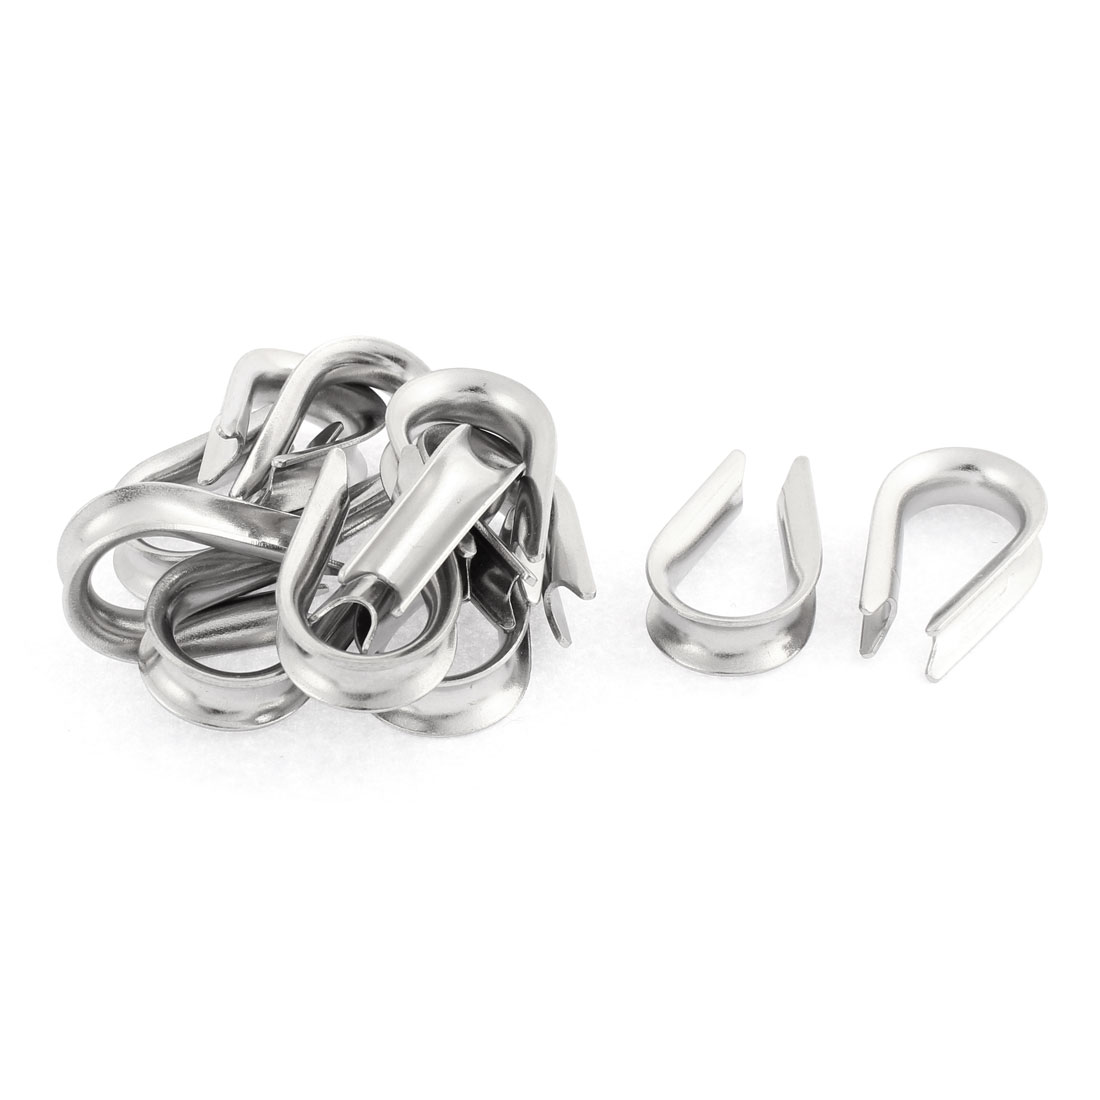 Stainless Steel 5mm Standard Wire Rope Cable Thimbles Rigging Lifting Gear 12pcs